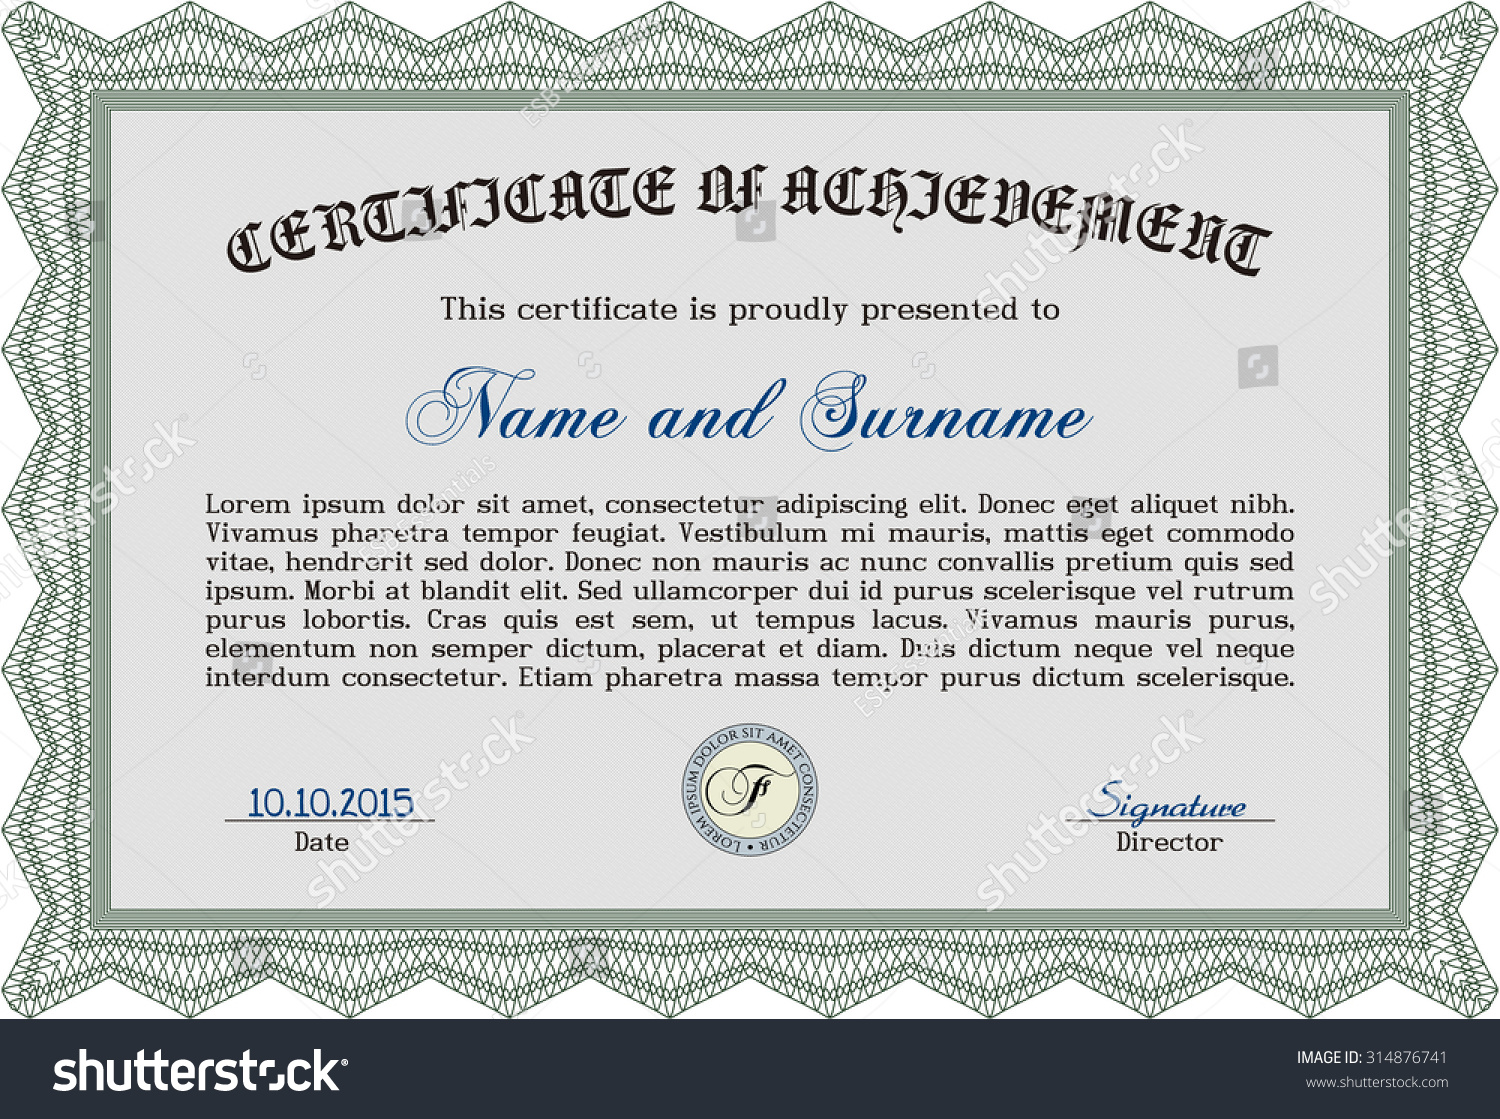 Lifetouch certificate of achievement template images certificate lifetouch certificate of achievement template image collections lifetouch certificate of achievement template gallery certificate lifetouch certificate yelopaper Choice Image